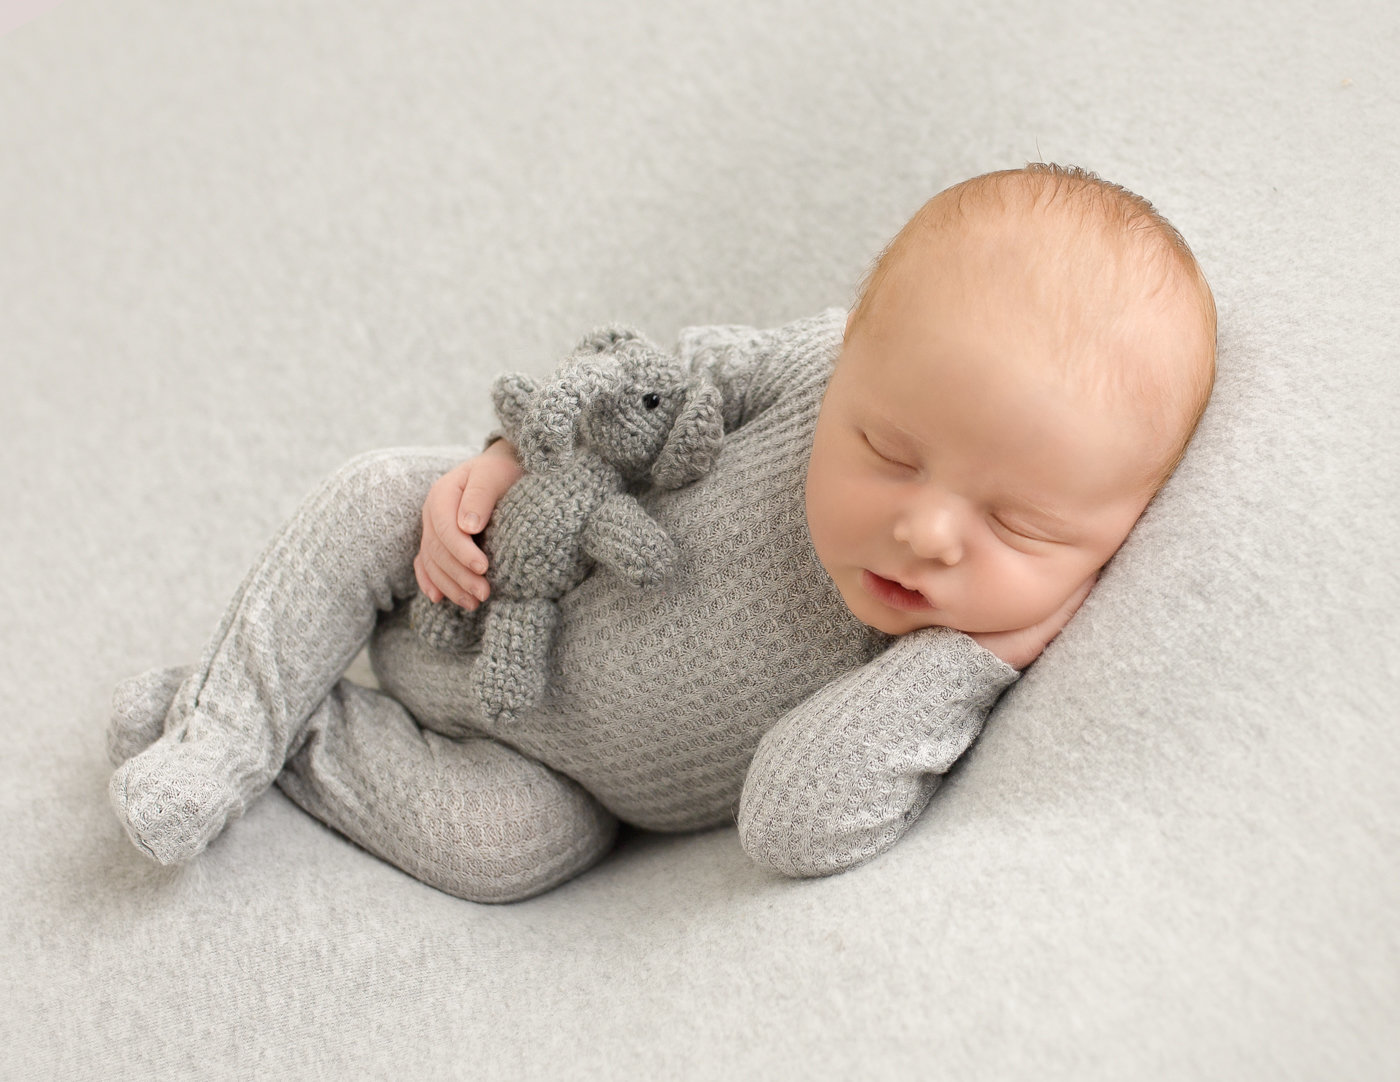 Precious newborn boy posed in our Rochester, Ny studio.